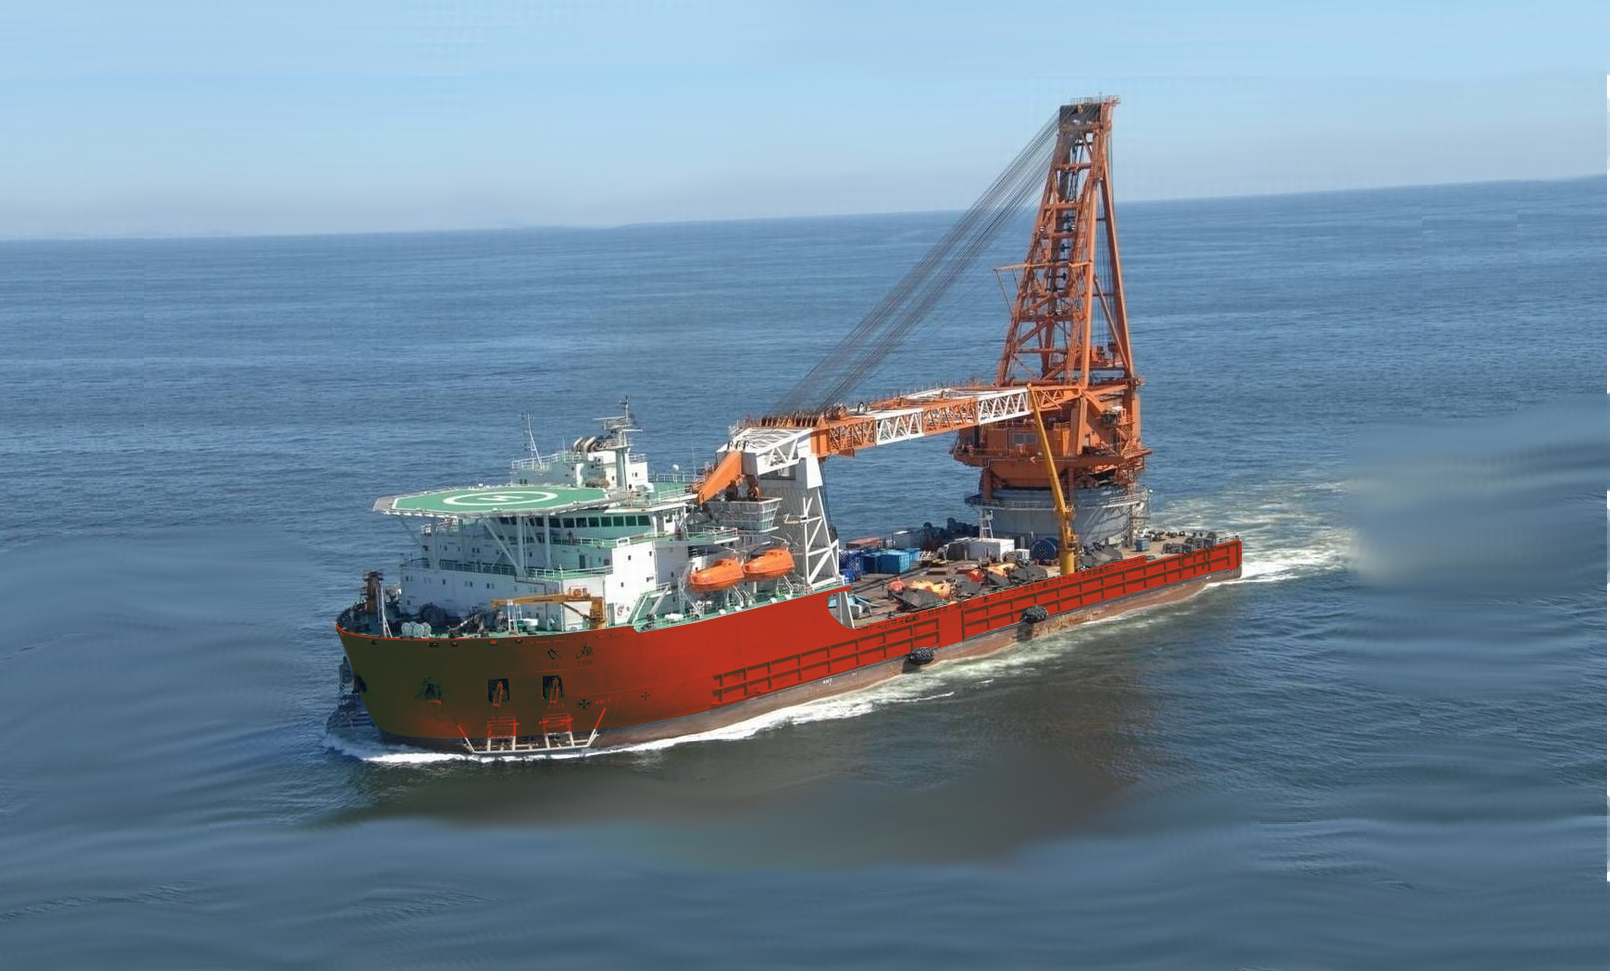 Derrick Pipelay Barge For Sale File-0205